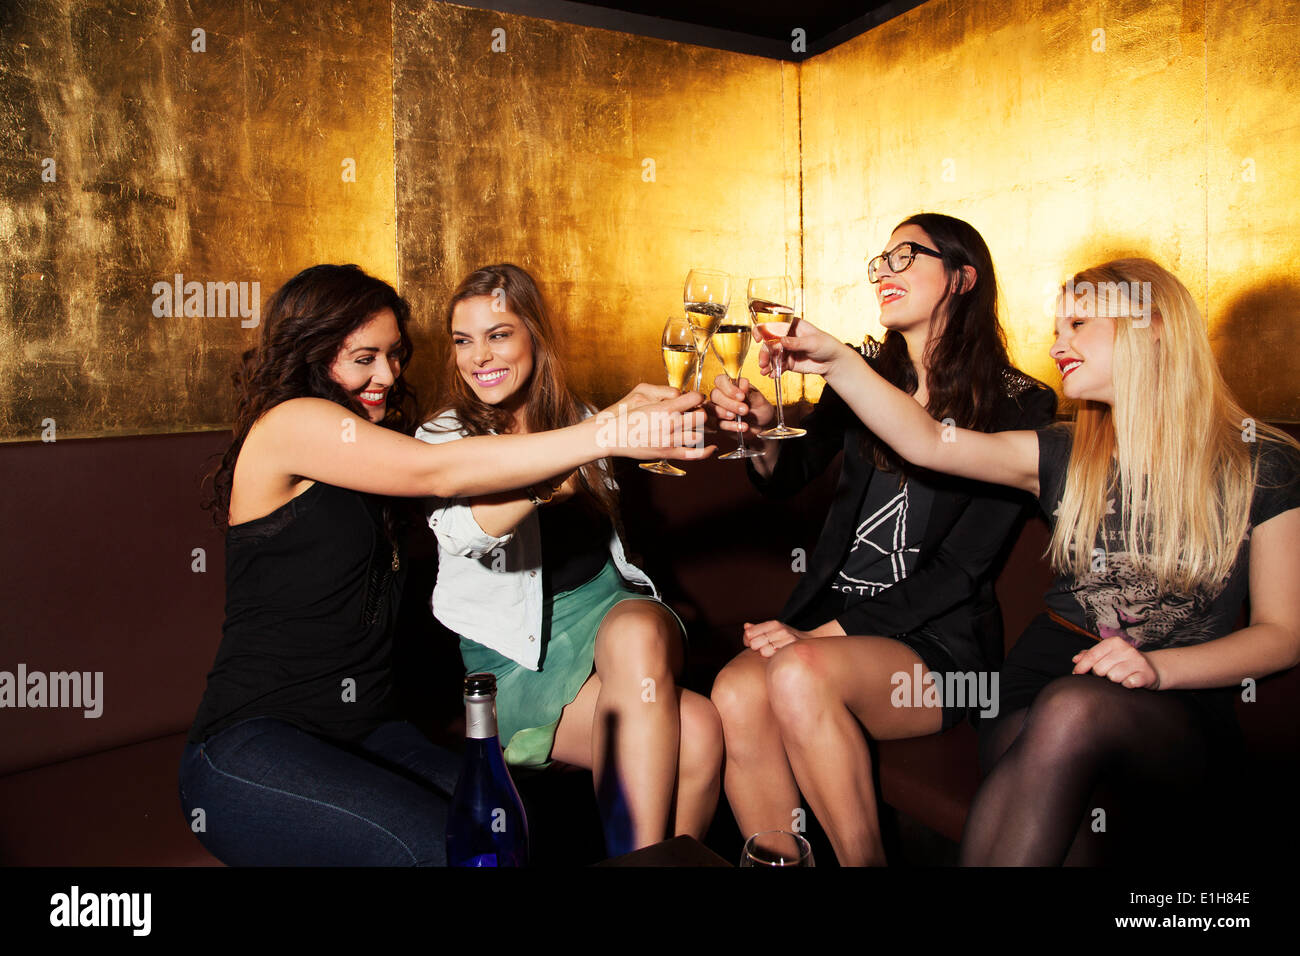 Quatre femmes friends toasting with wine in nightclub Photo Stock